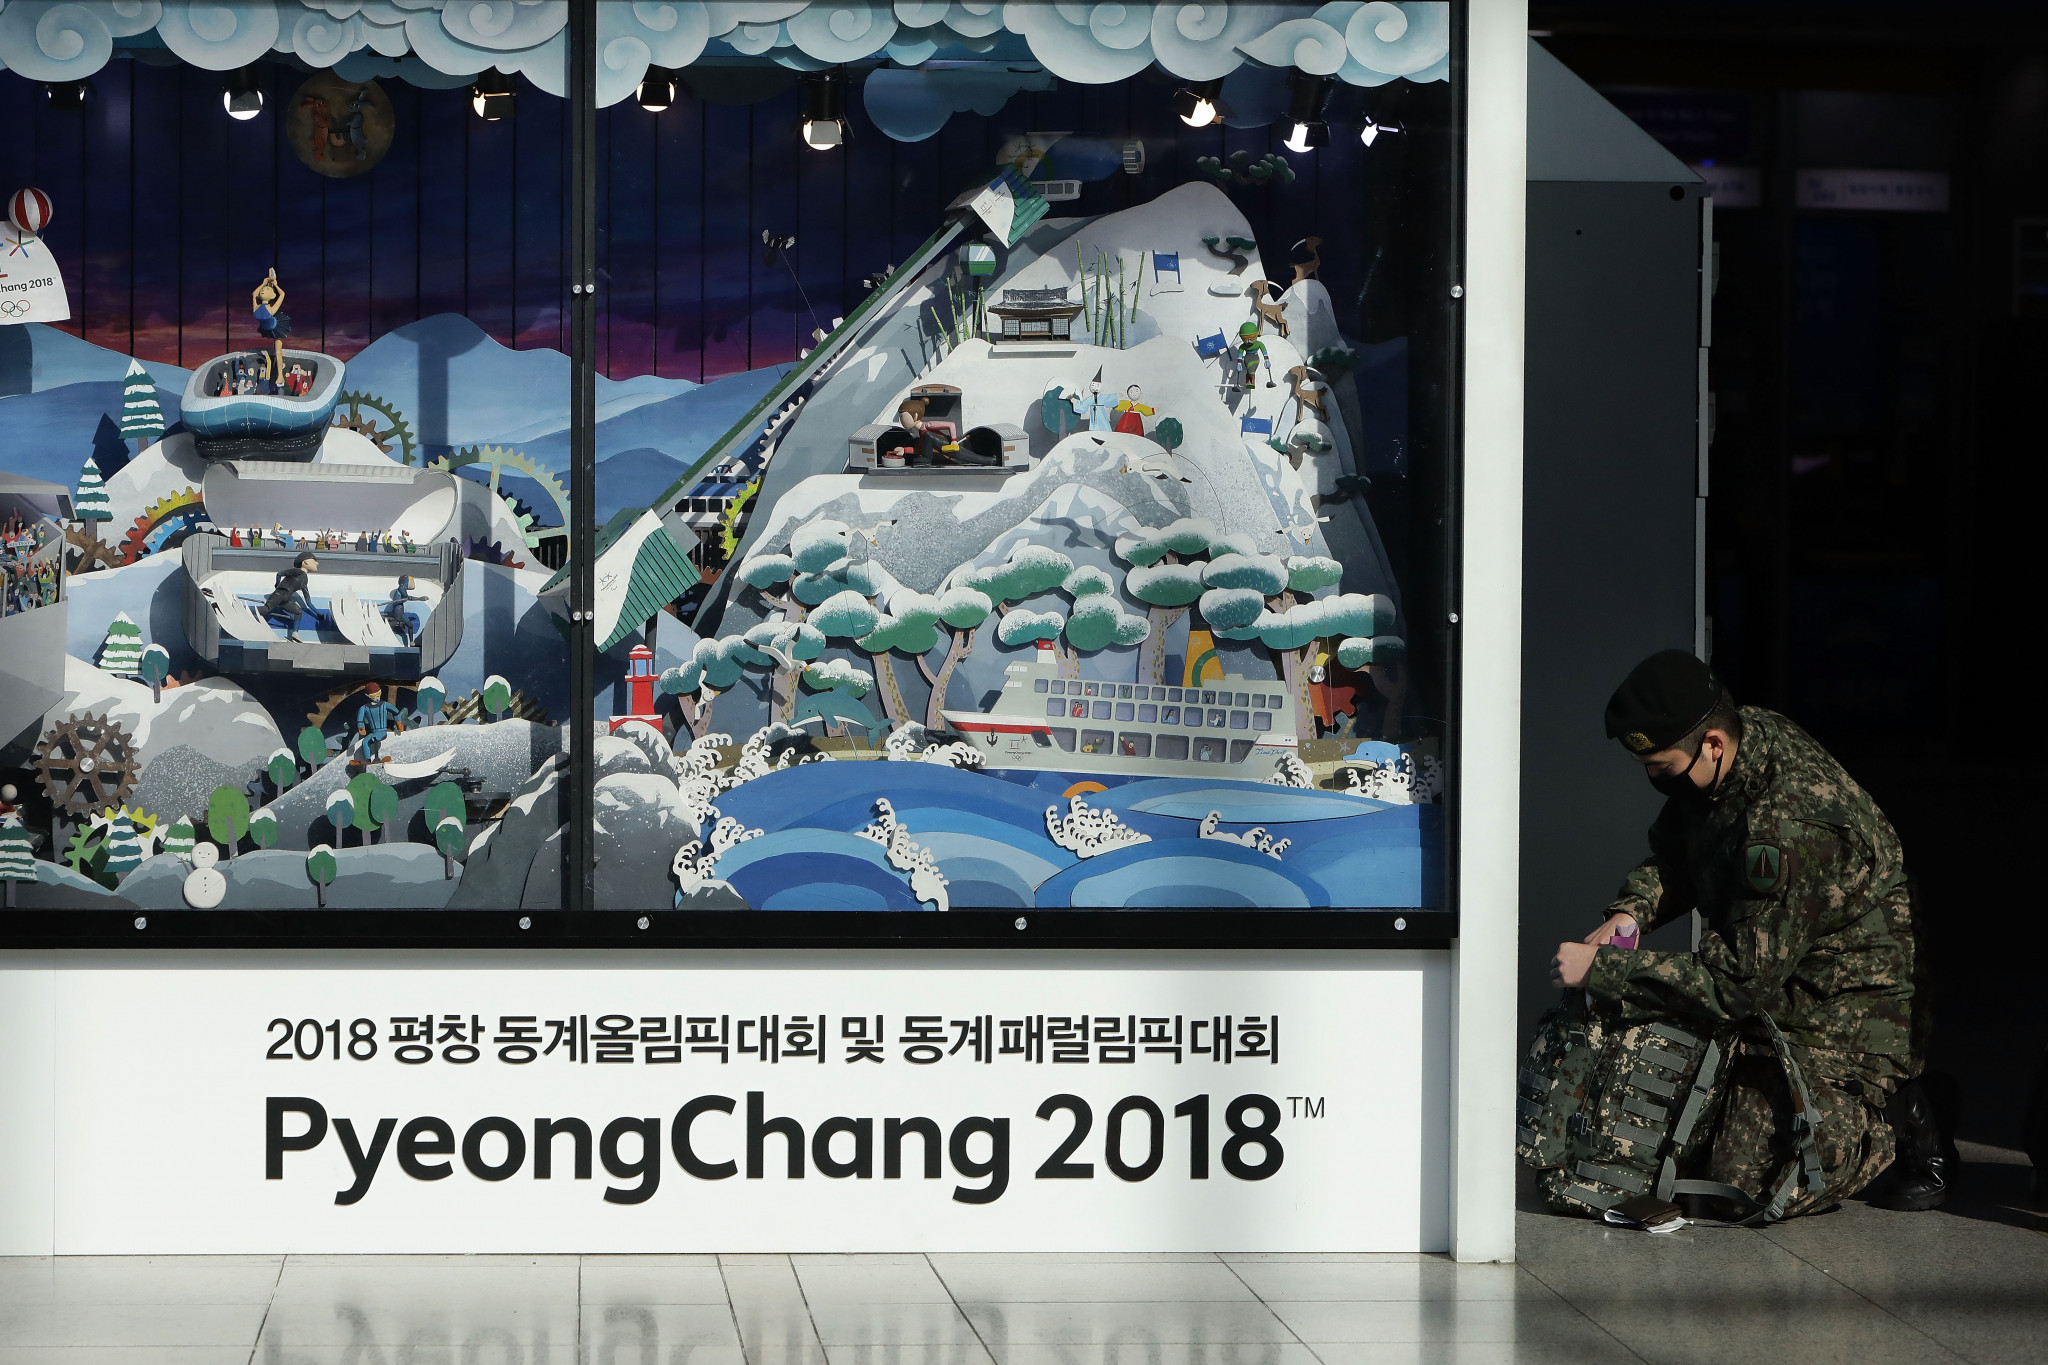 South Korea confirm combined team and joint Opening Ceremony parade with North Korea among Pyeongchang 2018 proposals